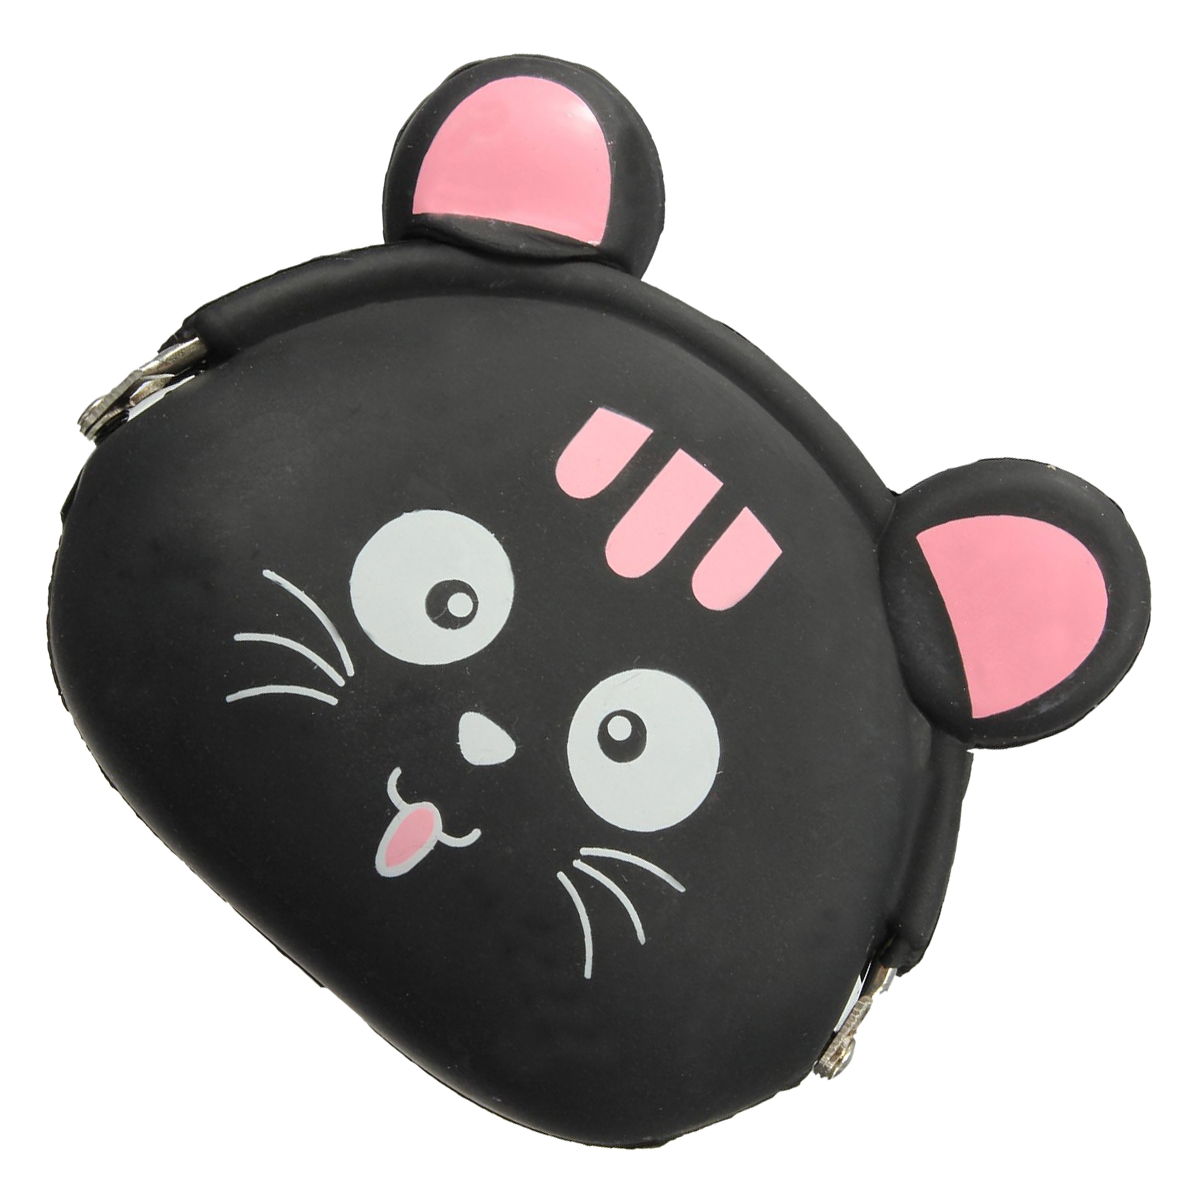 Women Girls Wallet Kawaii Cute Cartoon Animal Silicone Jelly coin purse Purse Kids Gift Black cat lps pet shop toys rare black little cat blue eyes animal models patrulla canina action figures kids toys gift cat free shipping